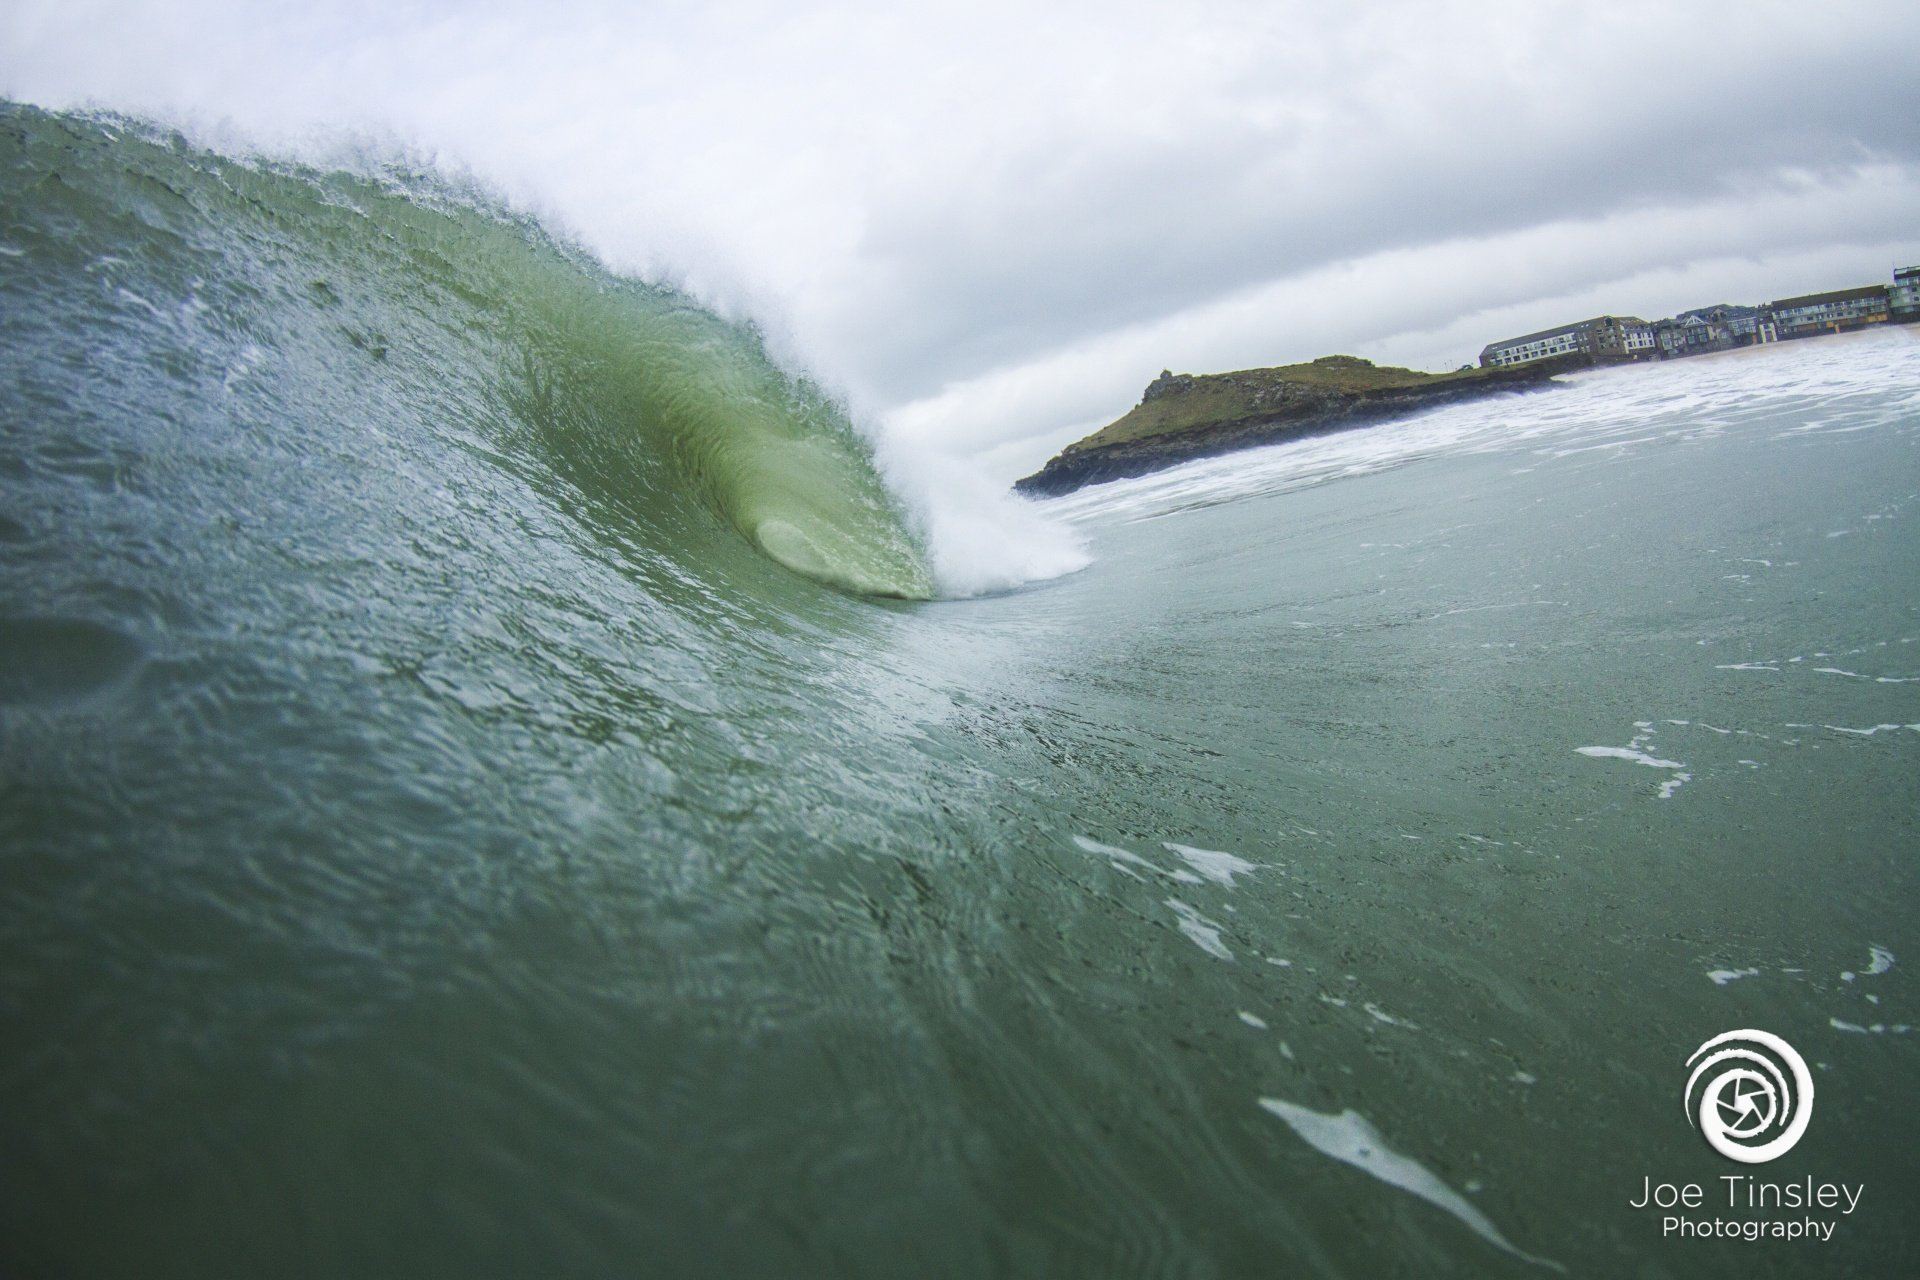 Joe Tinsley-Hewson's photo of Porthmeor